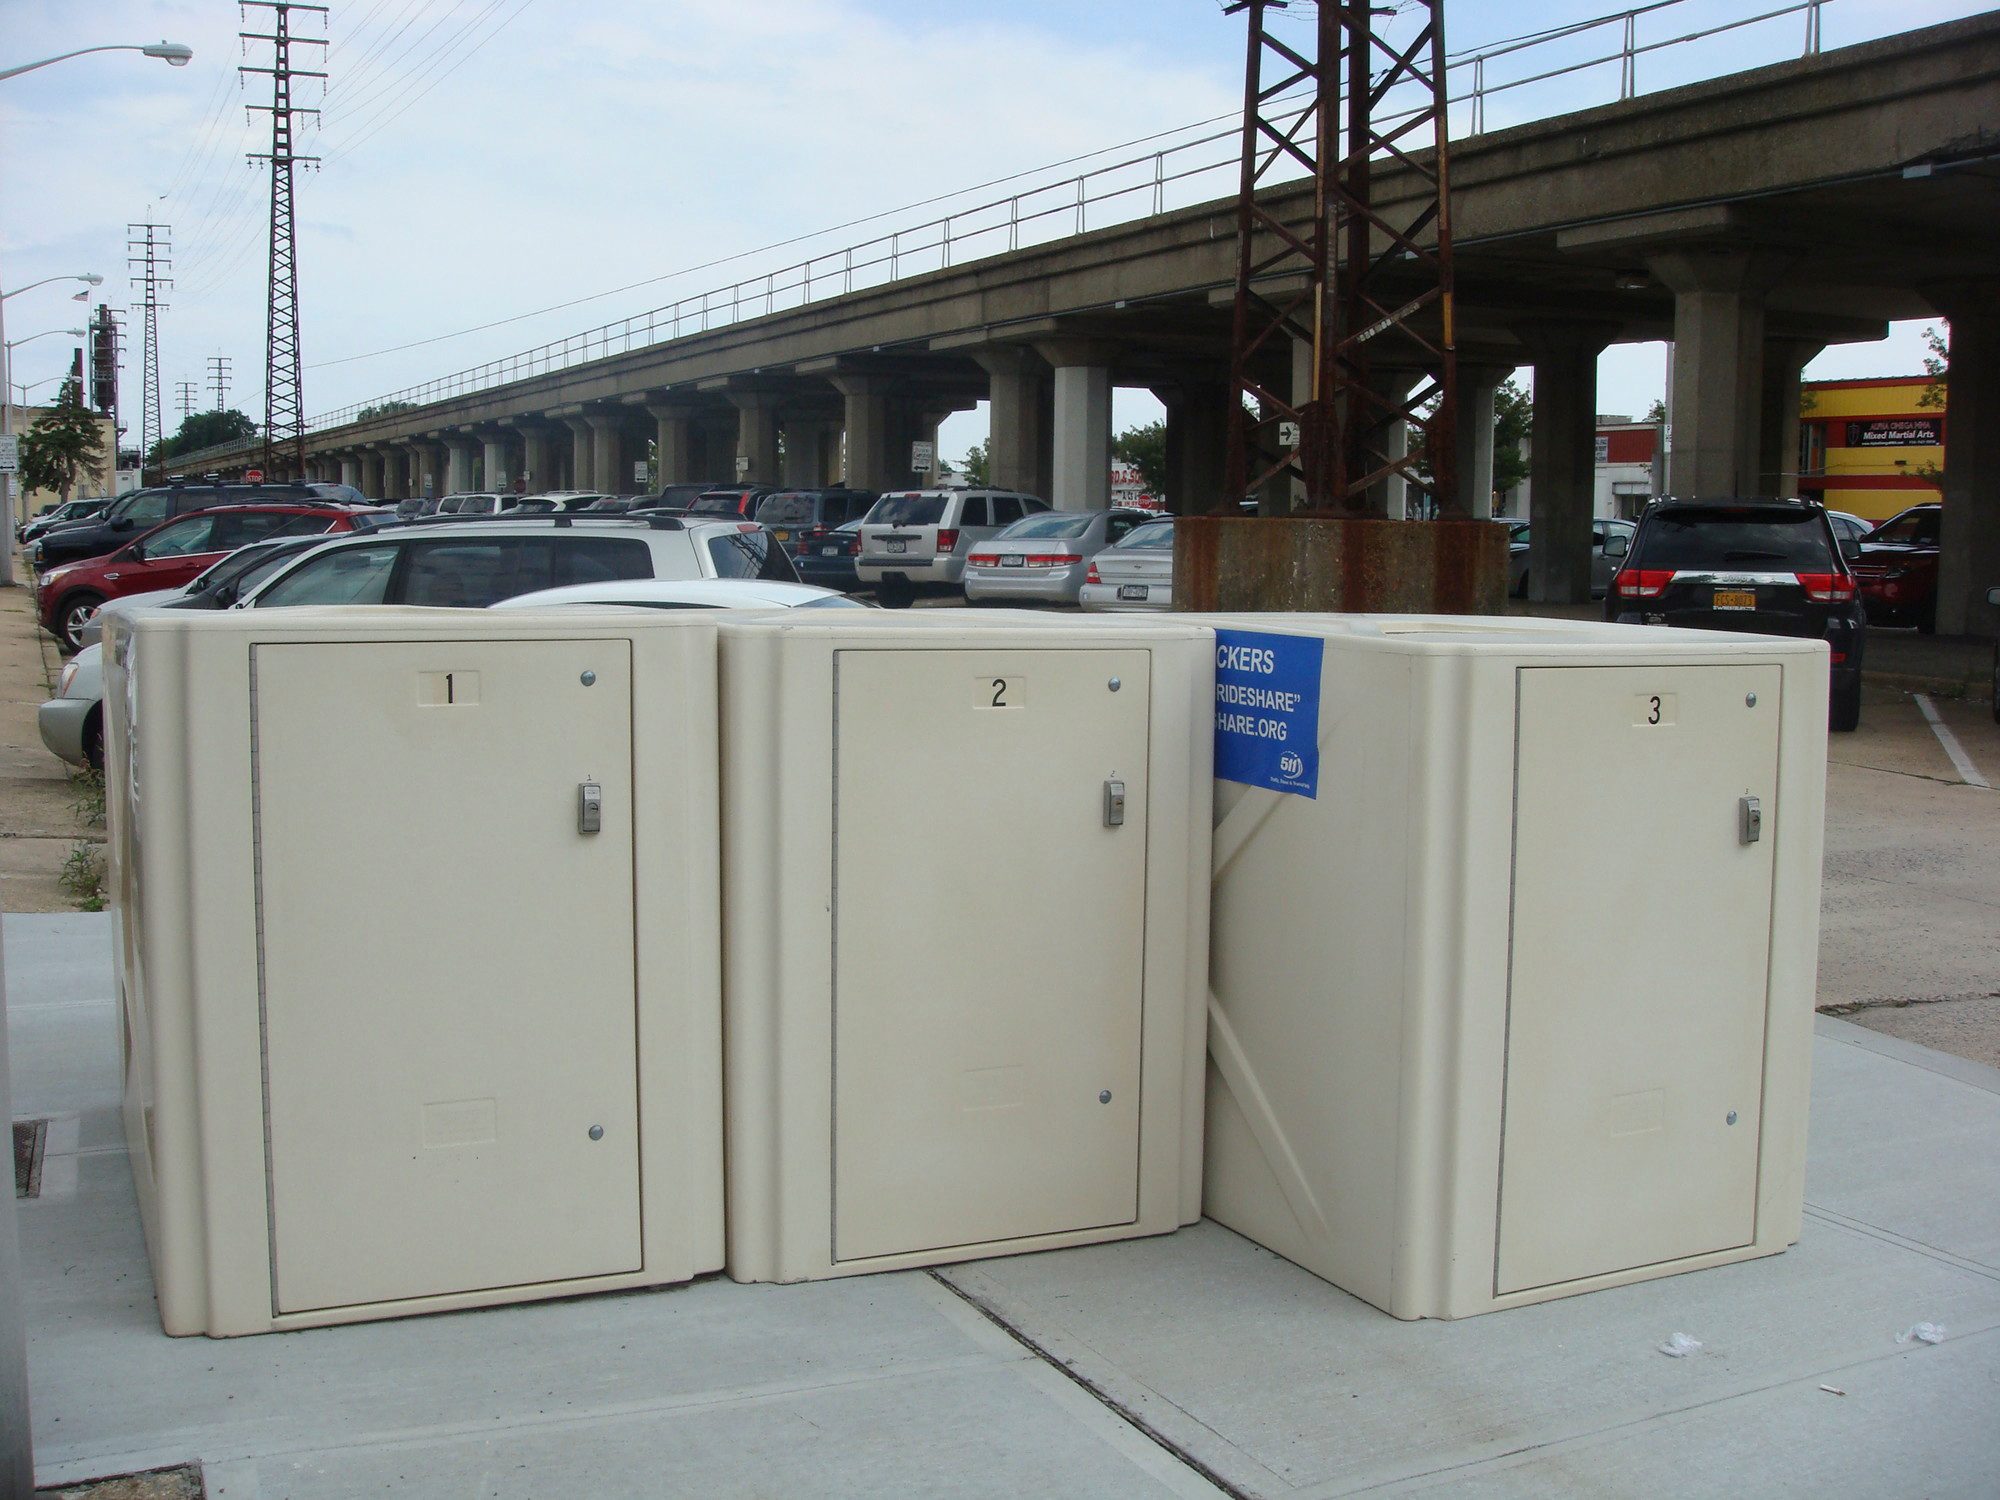 Other LIRR stations, like Rockville Centre, have installed bike lockers for public use.